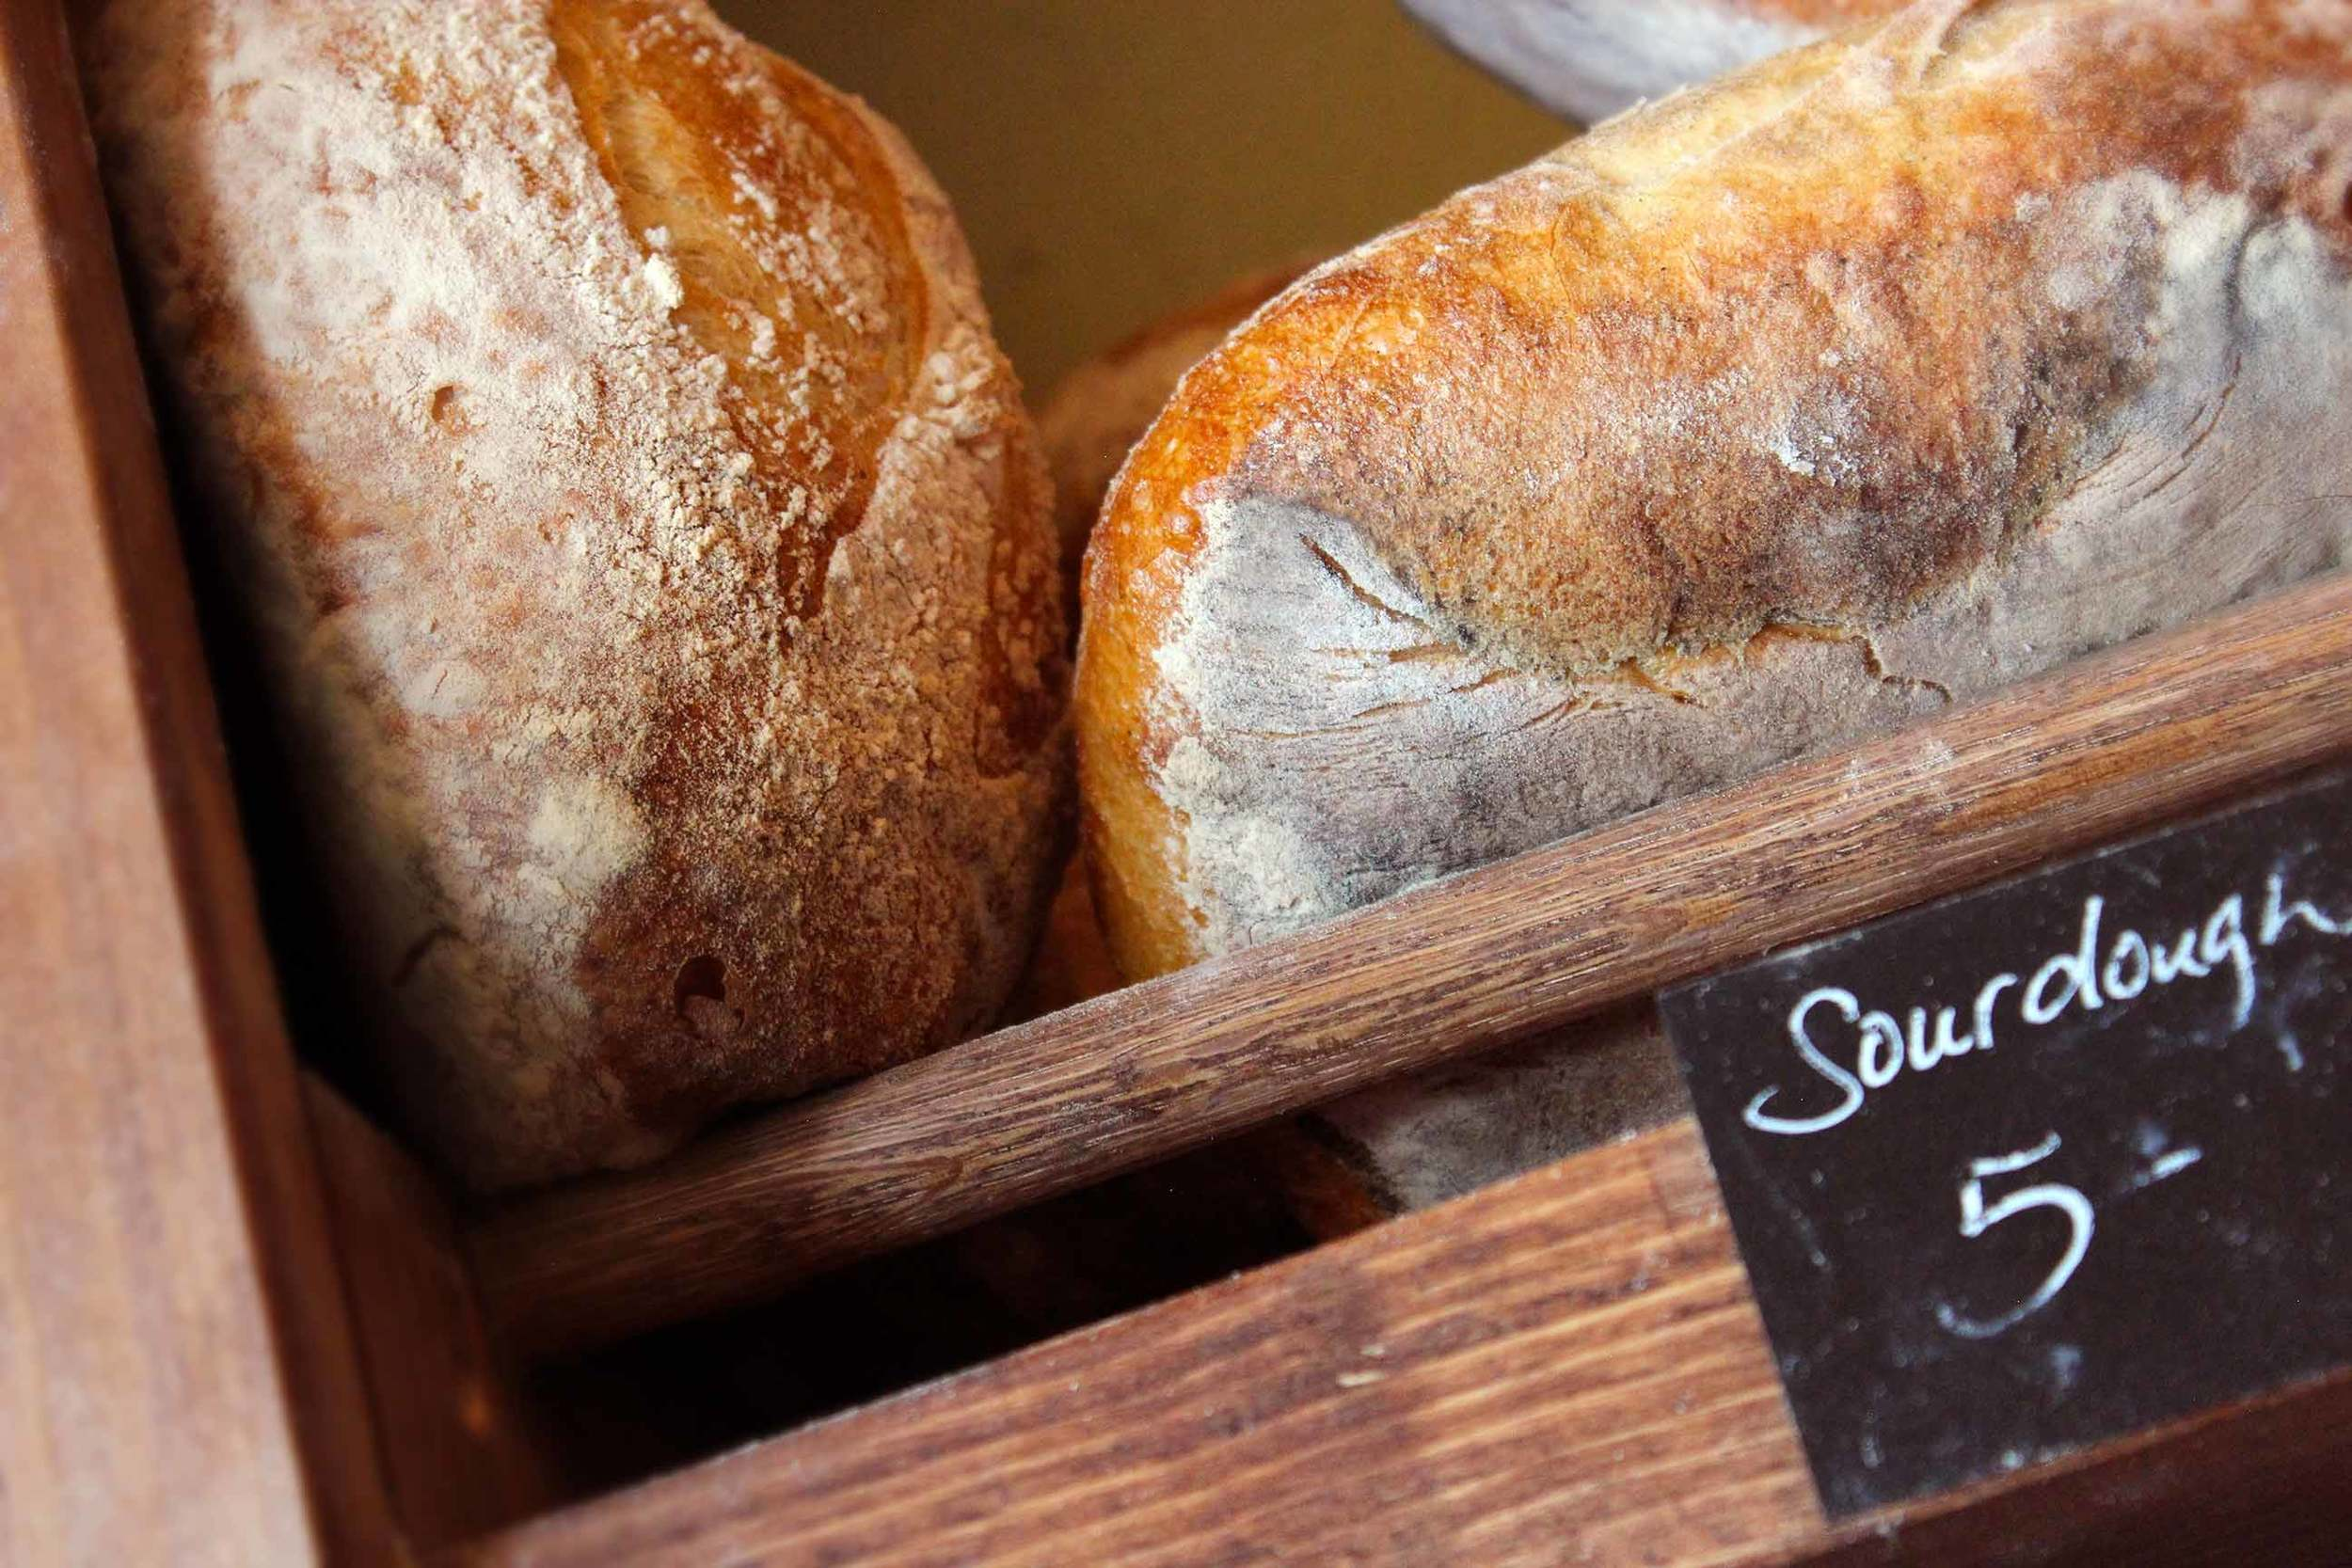 IMG_6253_Mtuccis_Sourdough.jpg